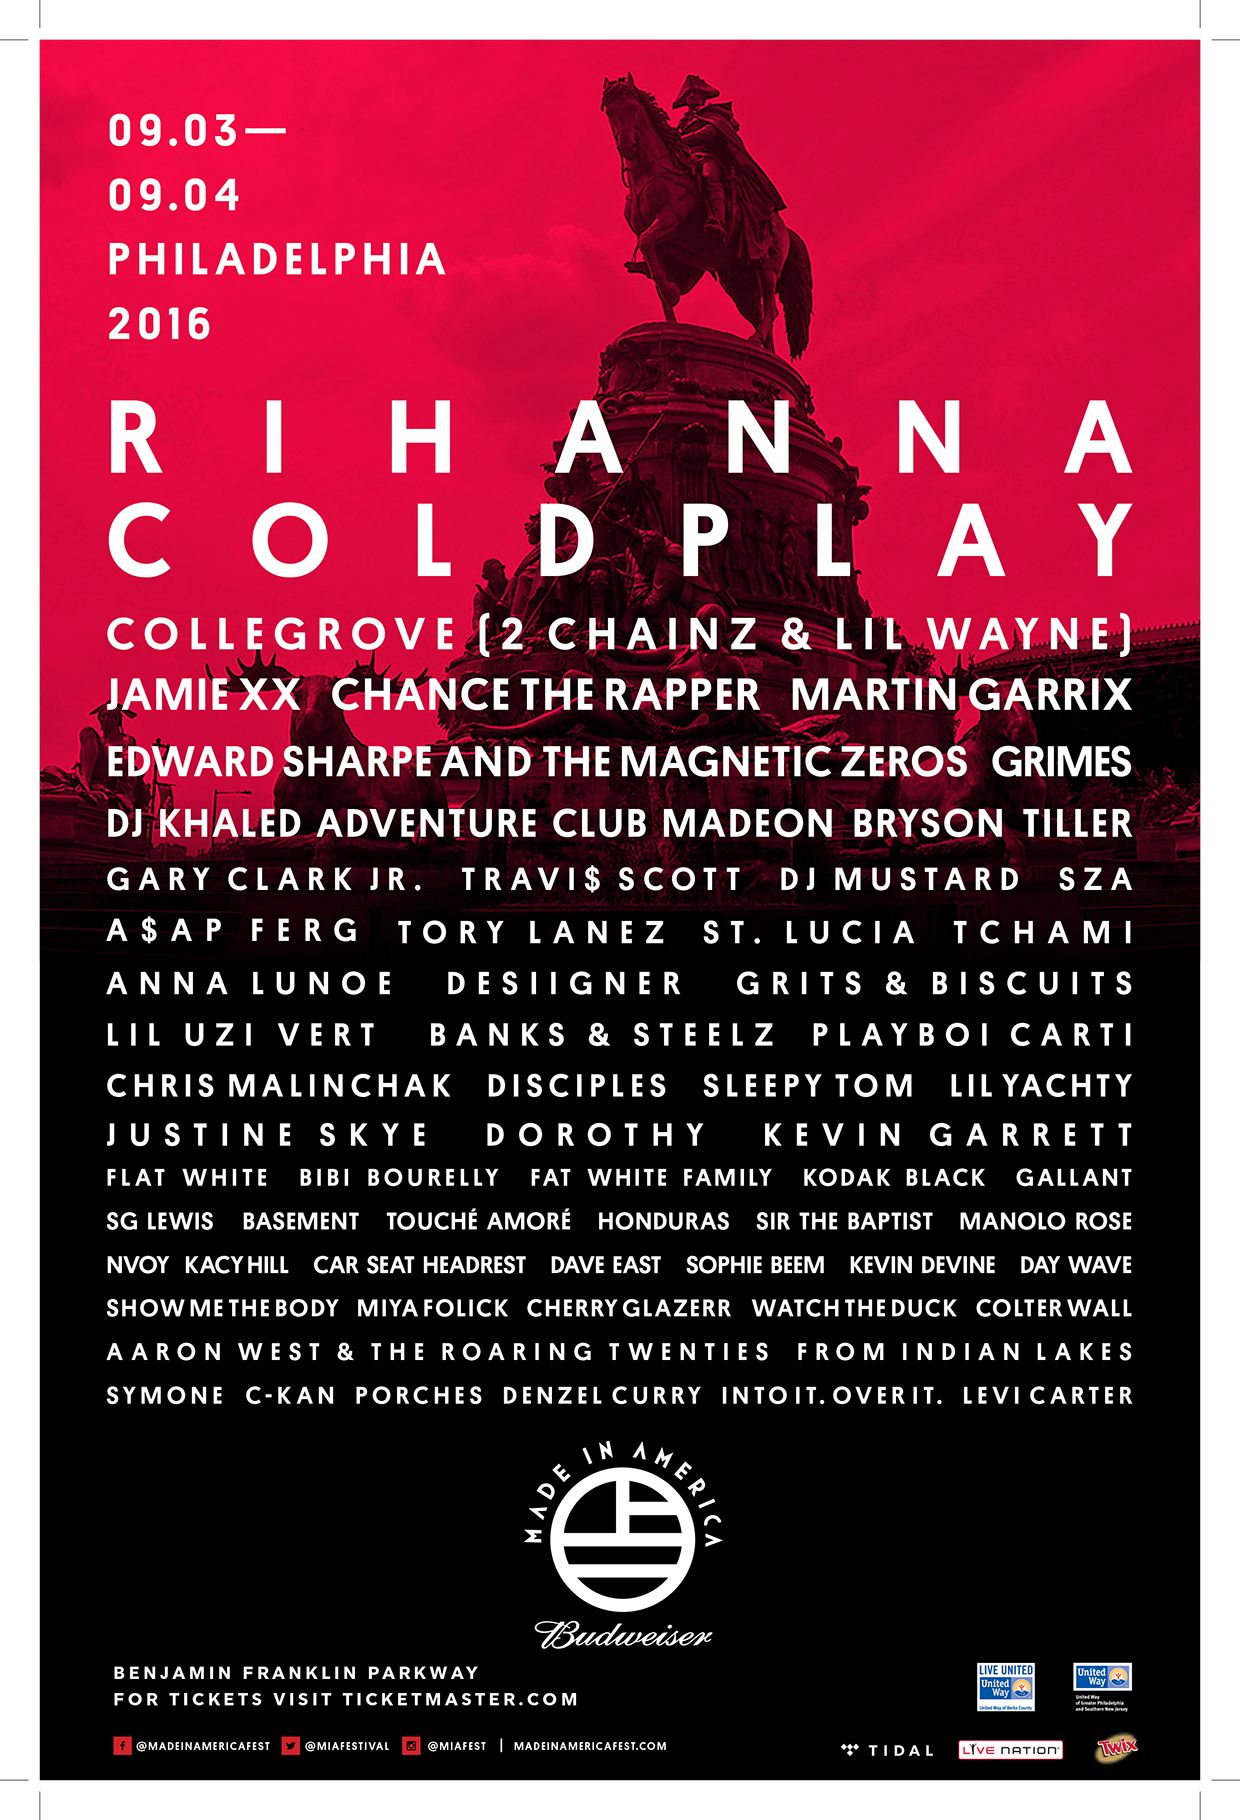 Budweiser Made In America Festival Will Return To Philadelphia For Its Fifth Season This Labor Day Weekend With A Star Studded Lineup And Slew Of